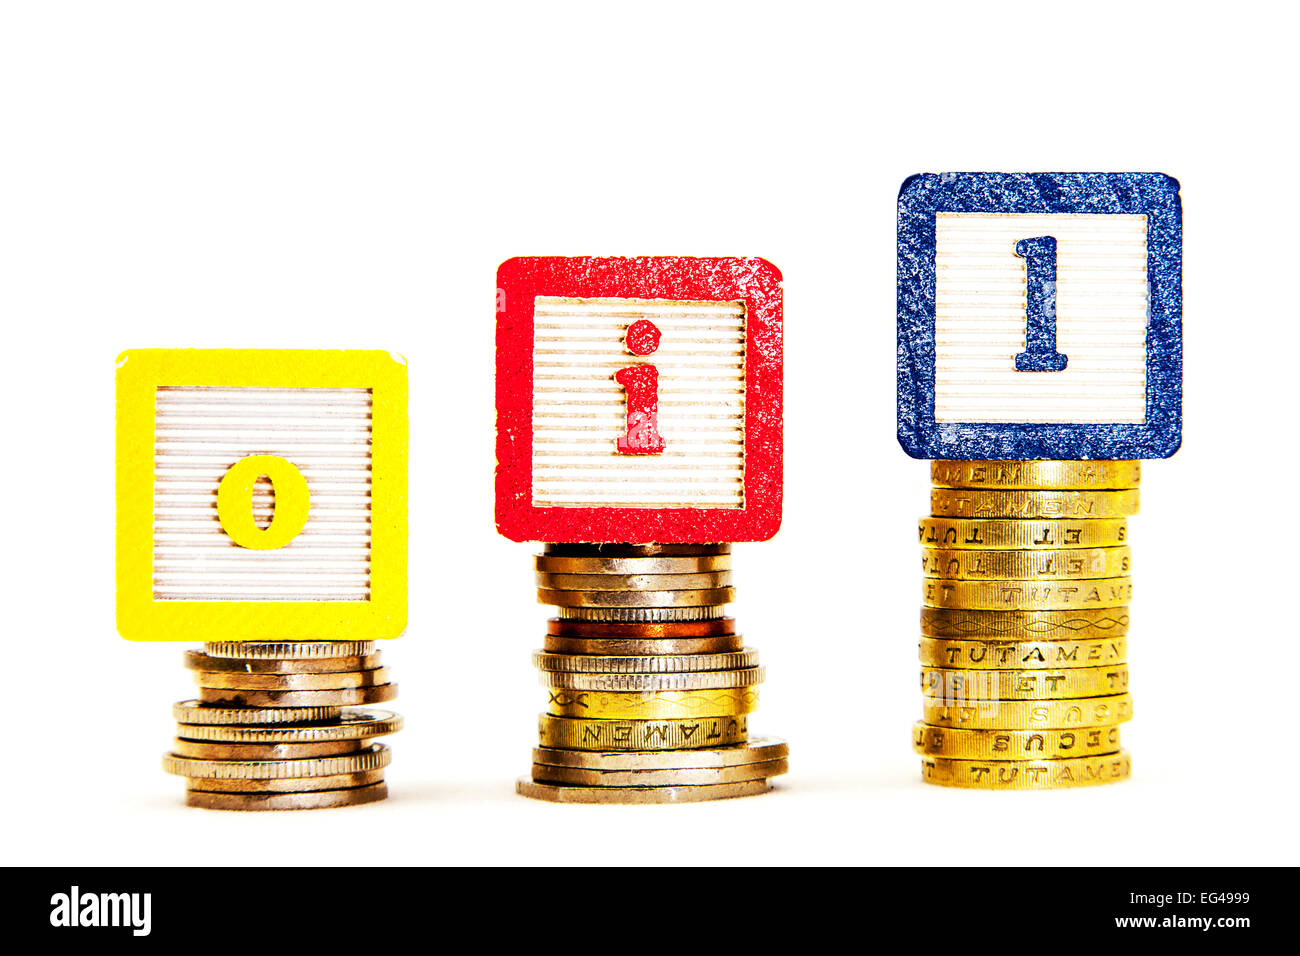 oil cost costs price prices rising high higher fluctuating money buying buy fuel Copy space cut out white background - Stock Image